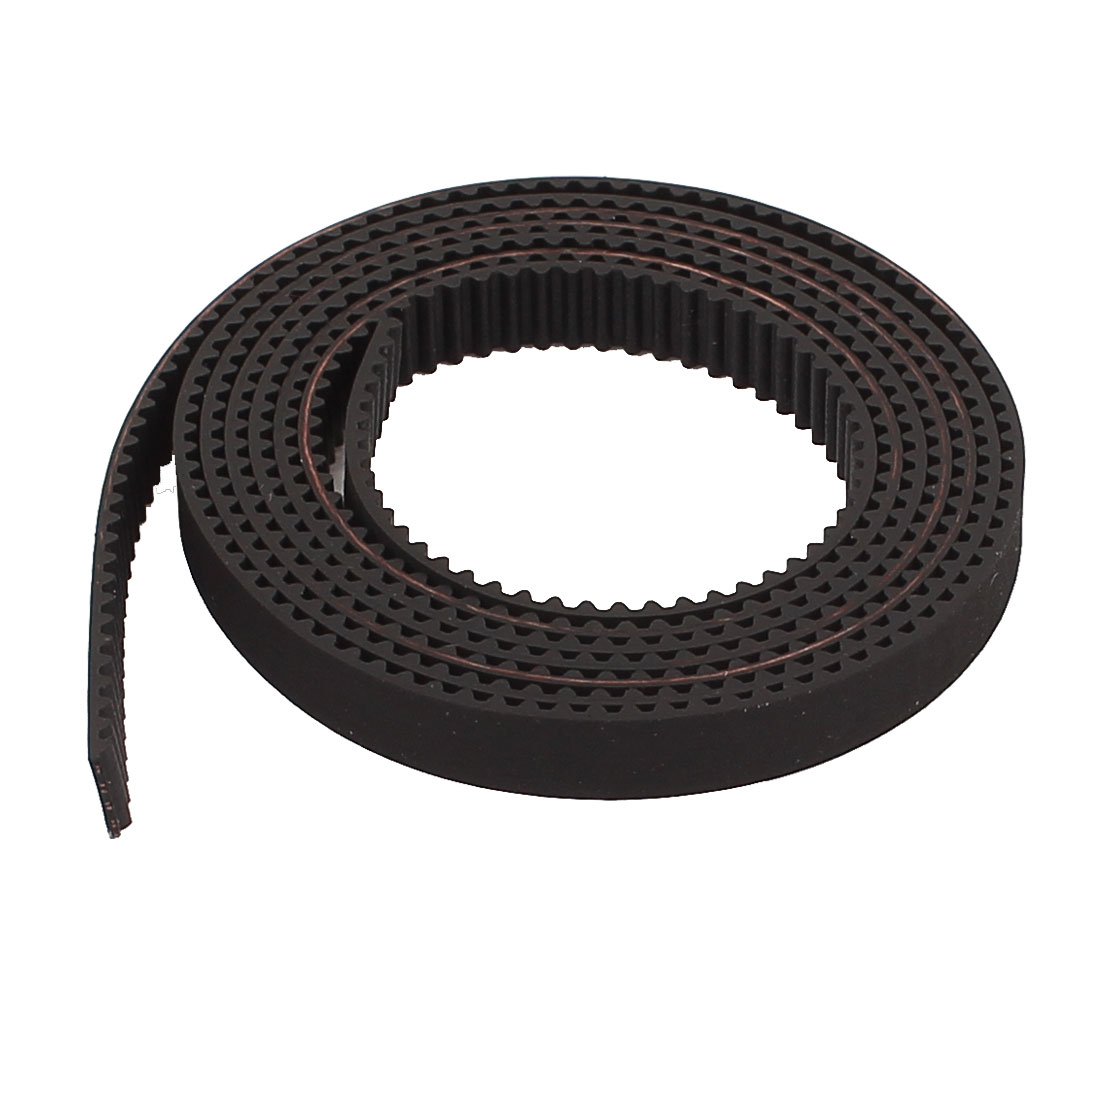 S2M 1M 6mm Wide 2mm Pitch Open Ended Timing Belt Black for 3D Printers